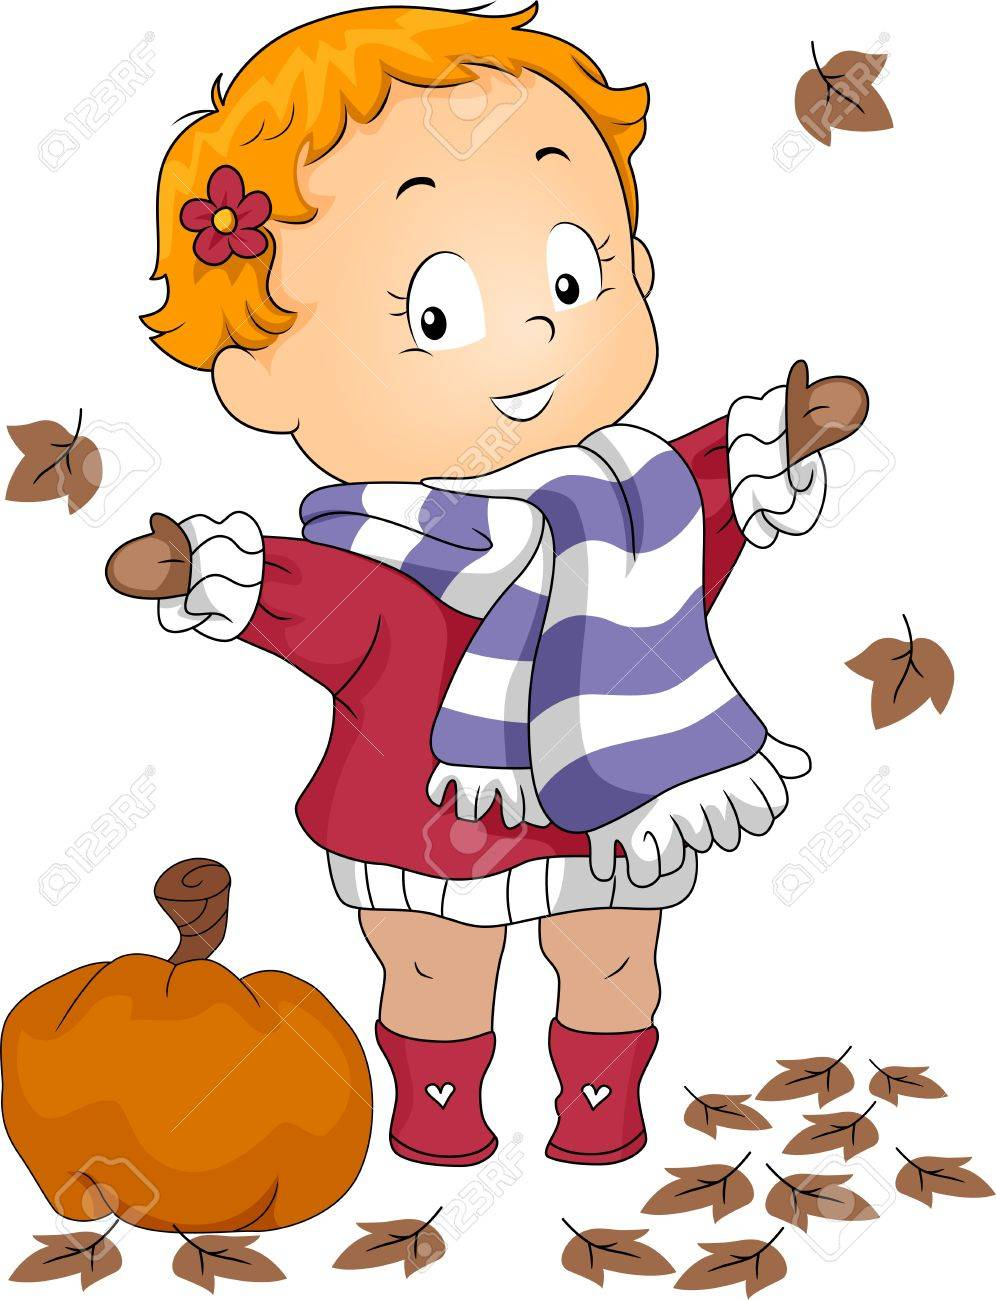 illustration of a baby playing with autumn leaves stock photo